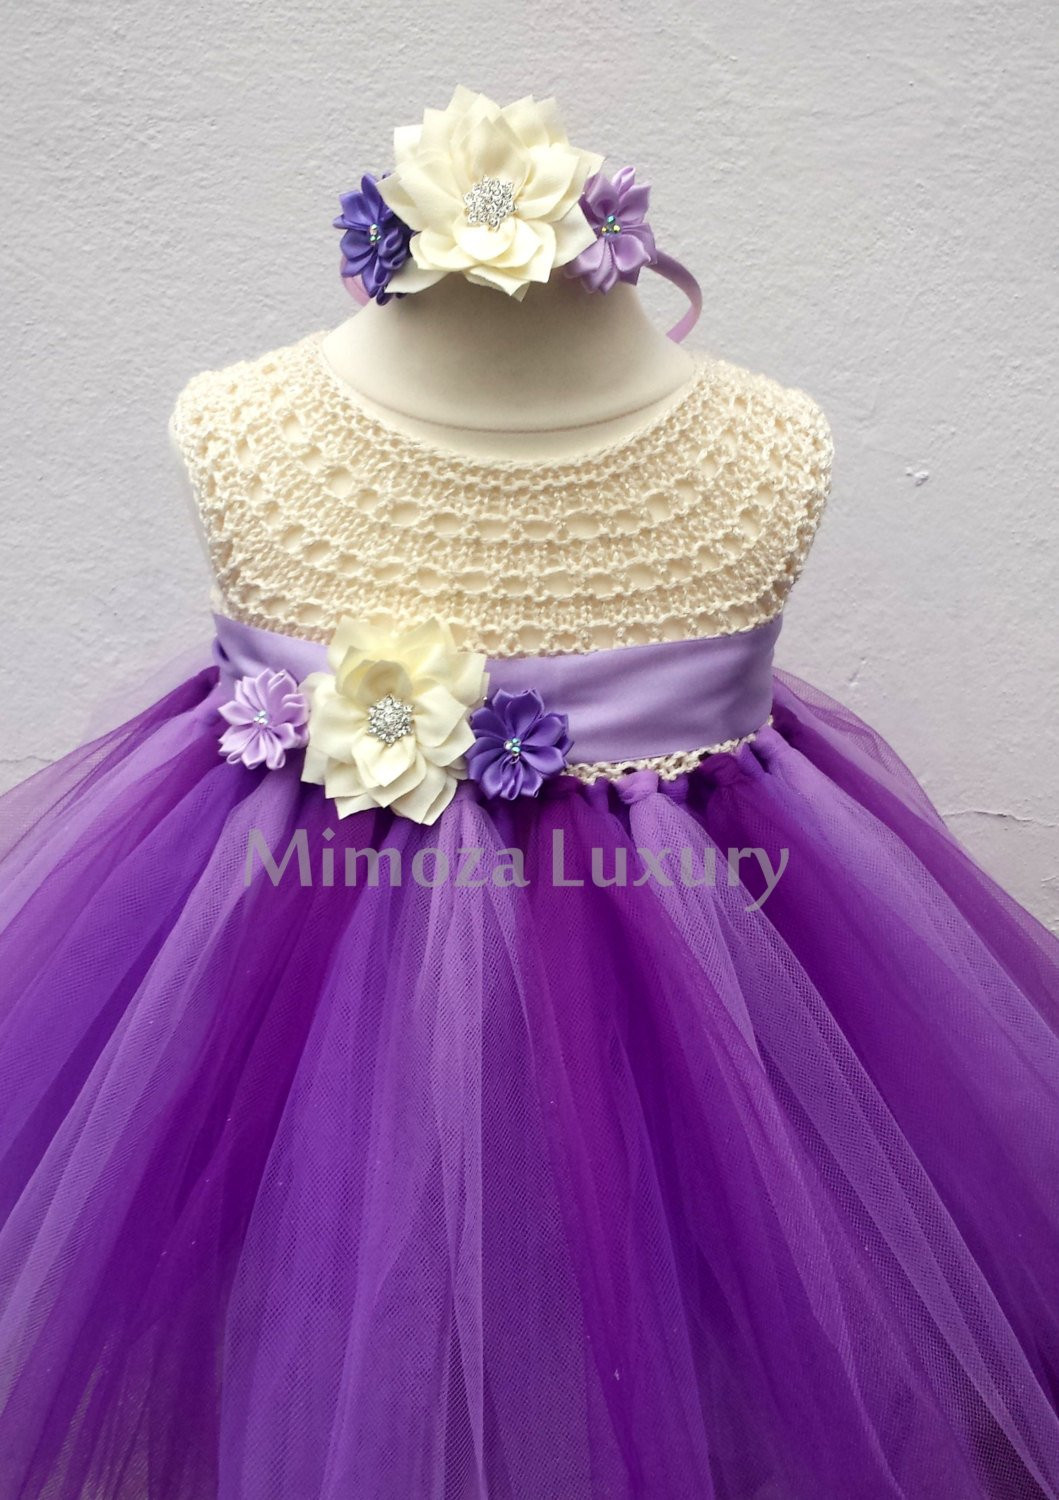 Crochet Flower Girl Dress Inspirational Purple Lavender Flower Girl Dress Tutu Dress Bridesmaid Of Contemporary 42 Pics Crochet Flower Girl Dress